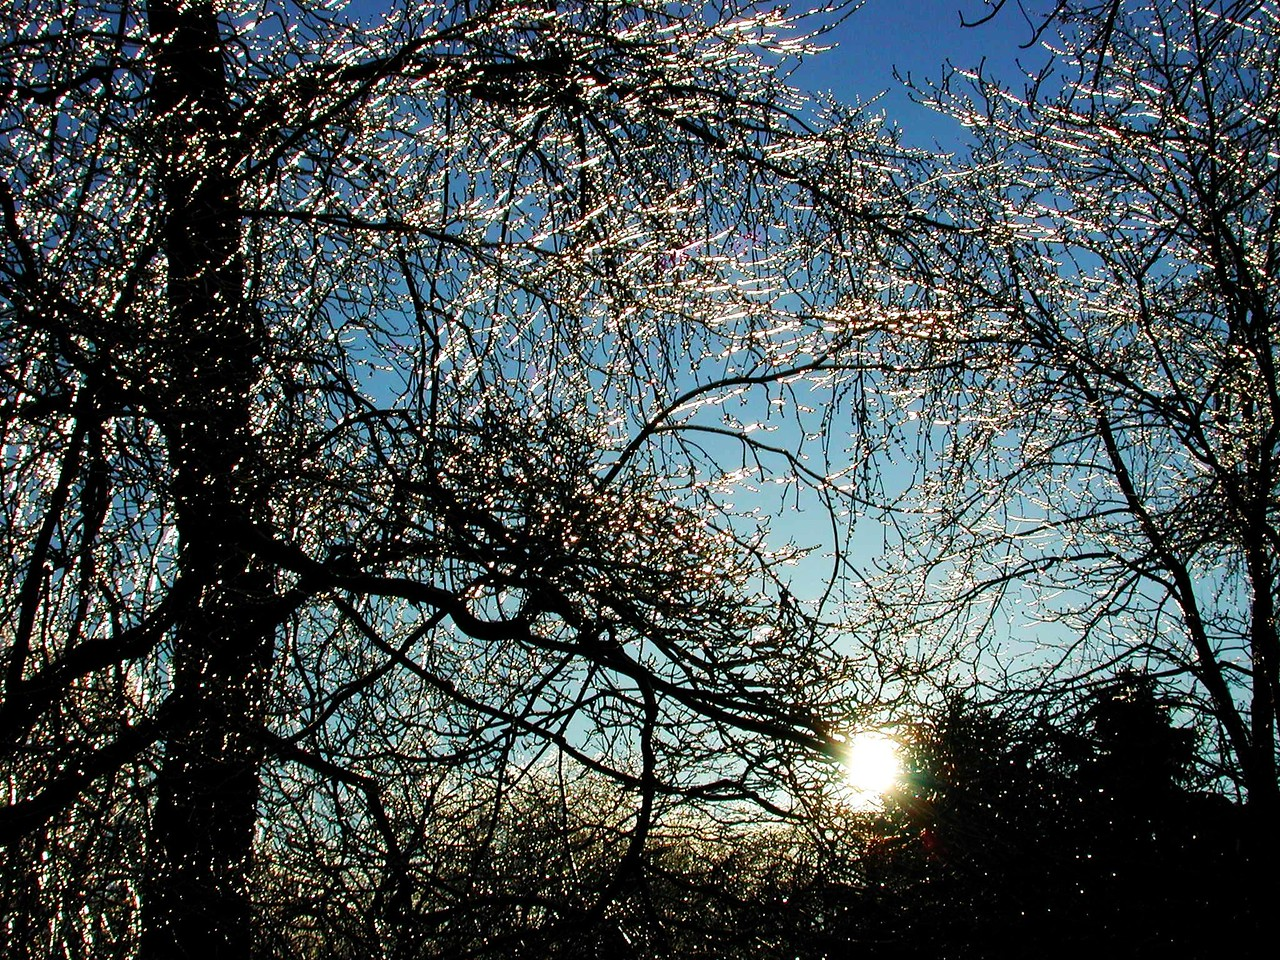 The early morning sun glistens off the branches covered with ice.